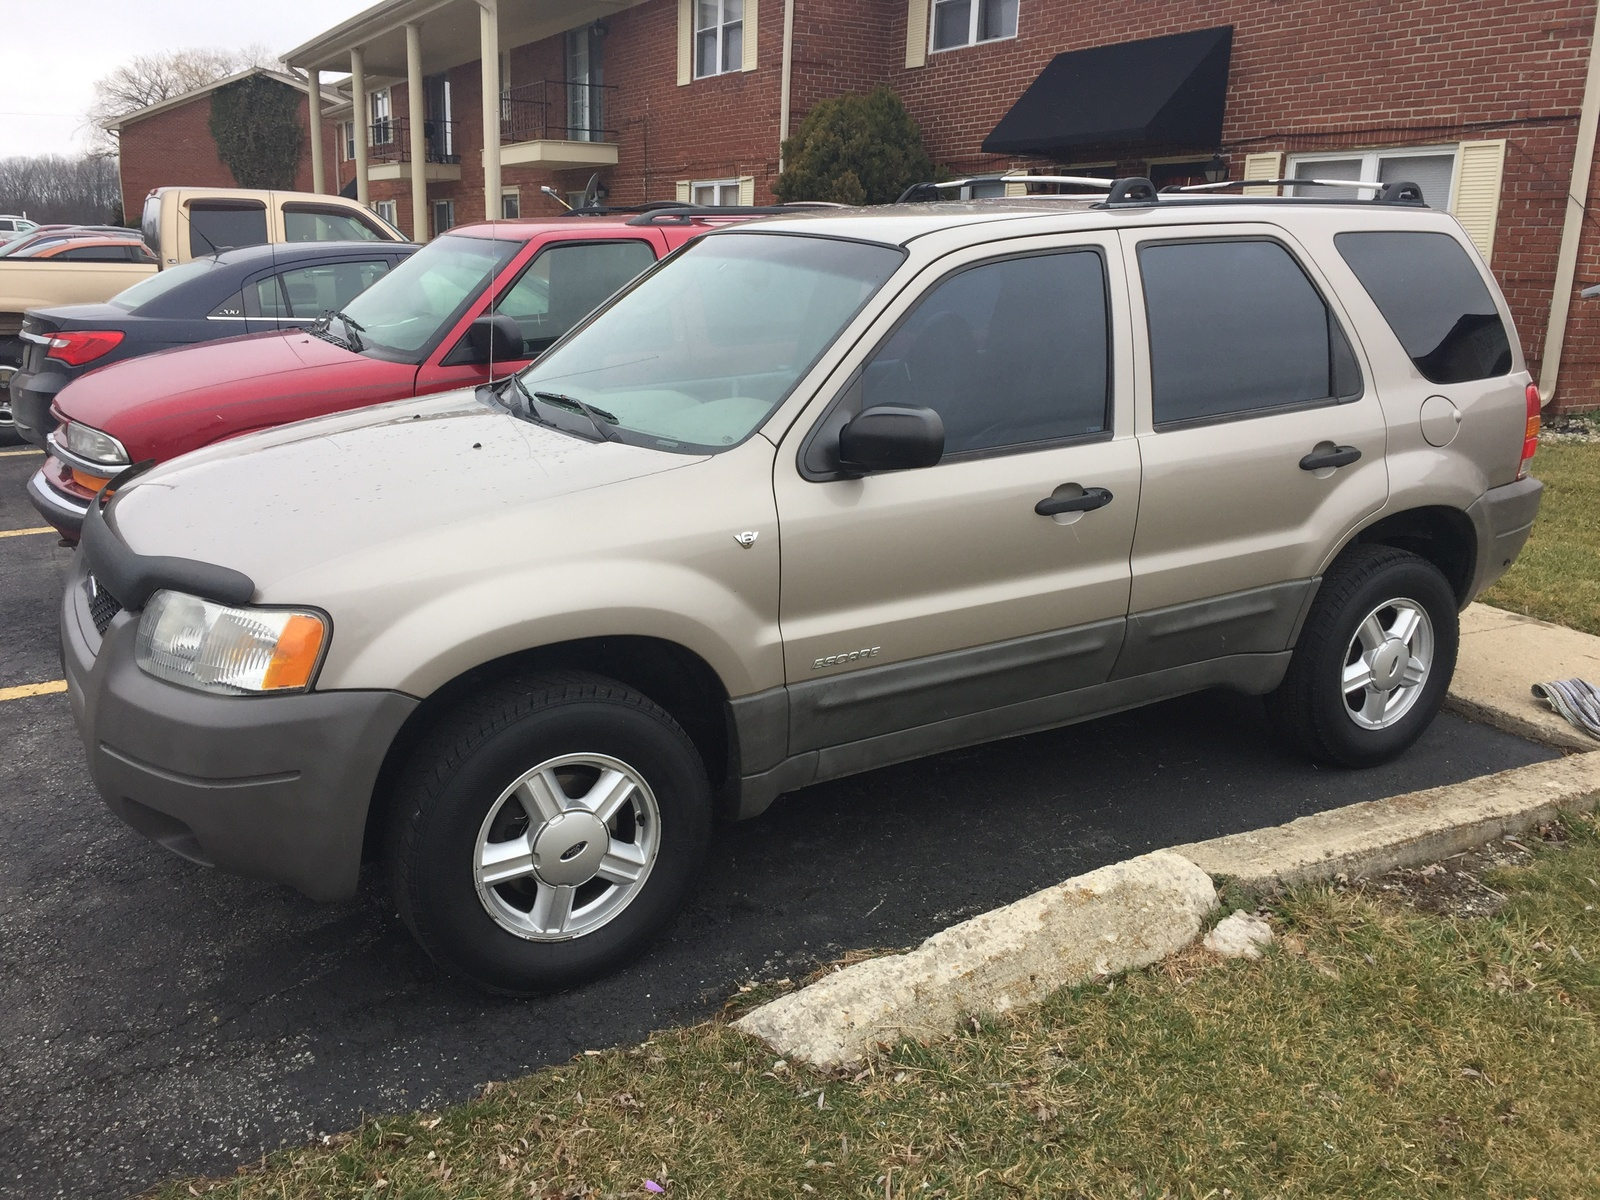 Ford Escape Questions 2001 Ford Escape 4x4 Cargurus